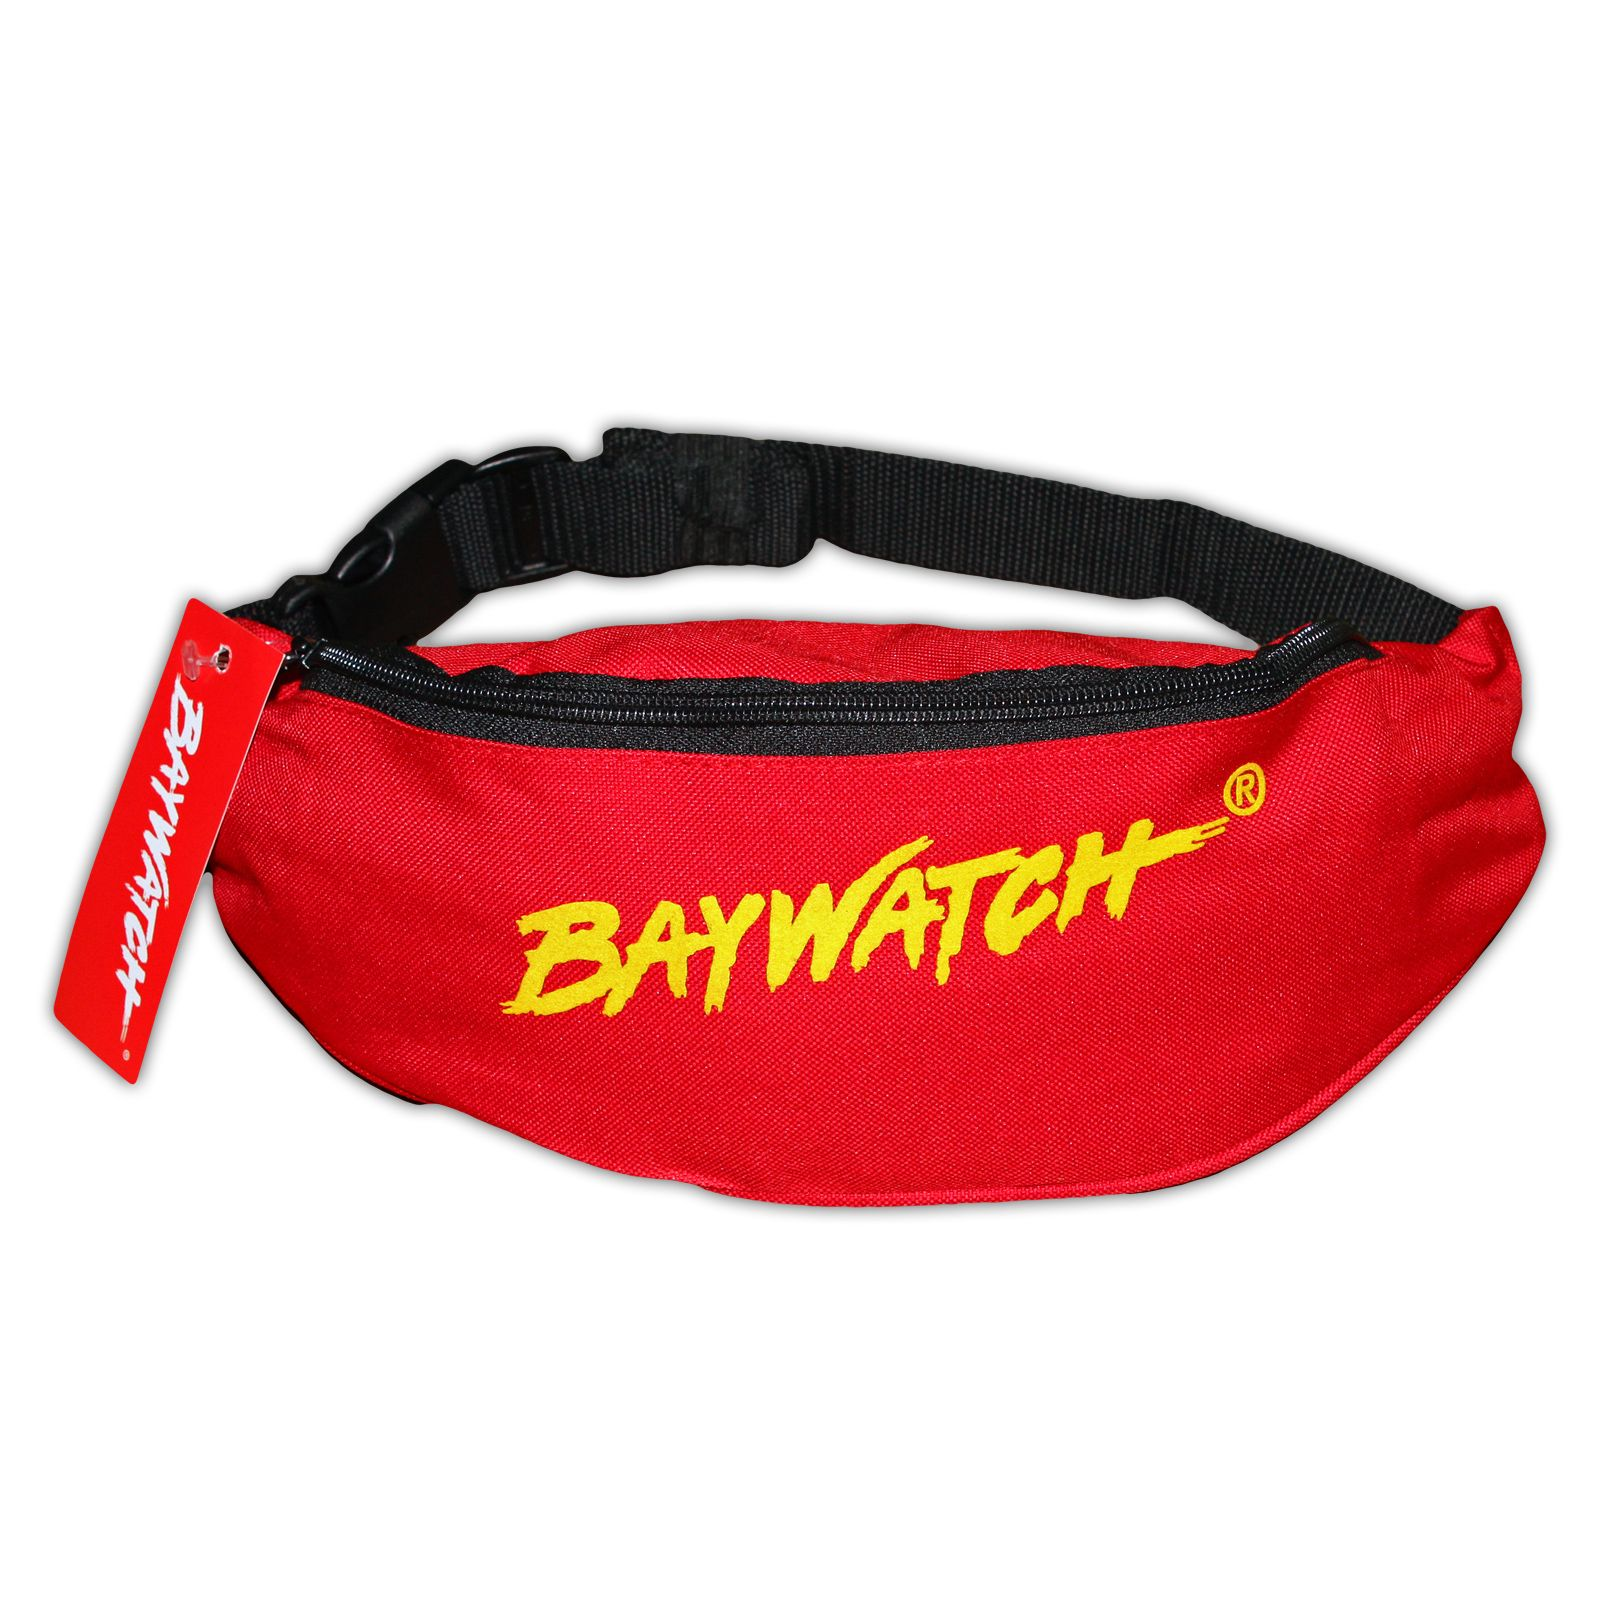 d972eca069cc LICENSED BAYWATCH ® RED YELLOW BELT BAG .